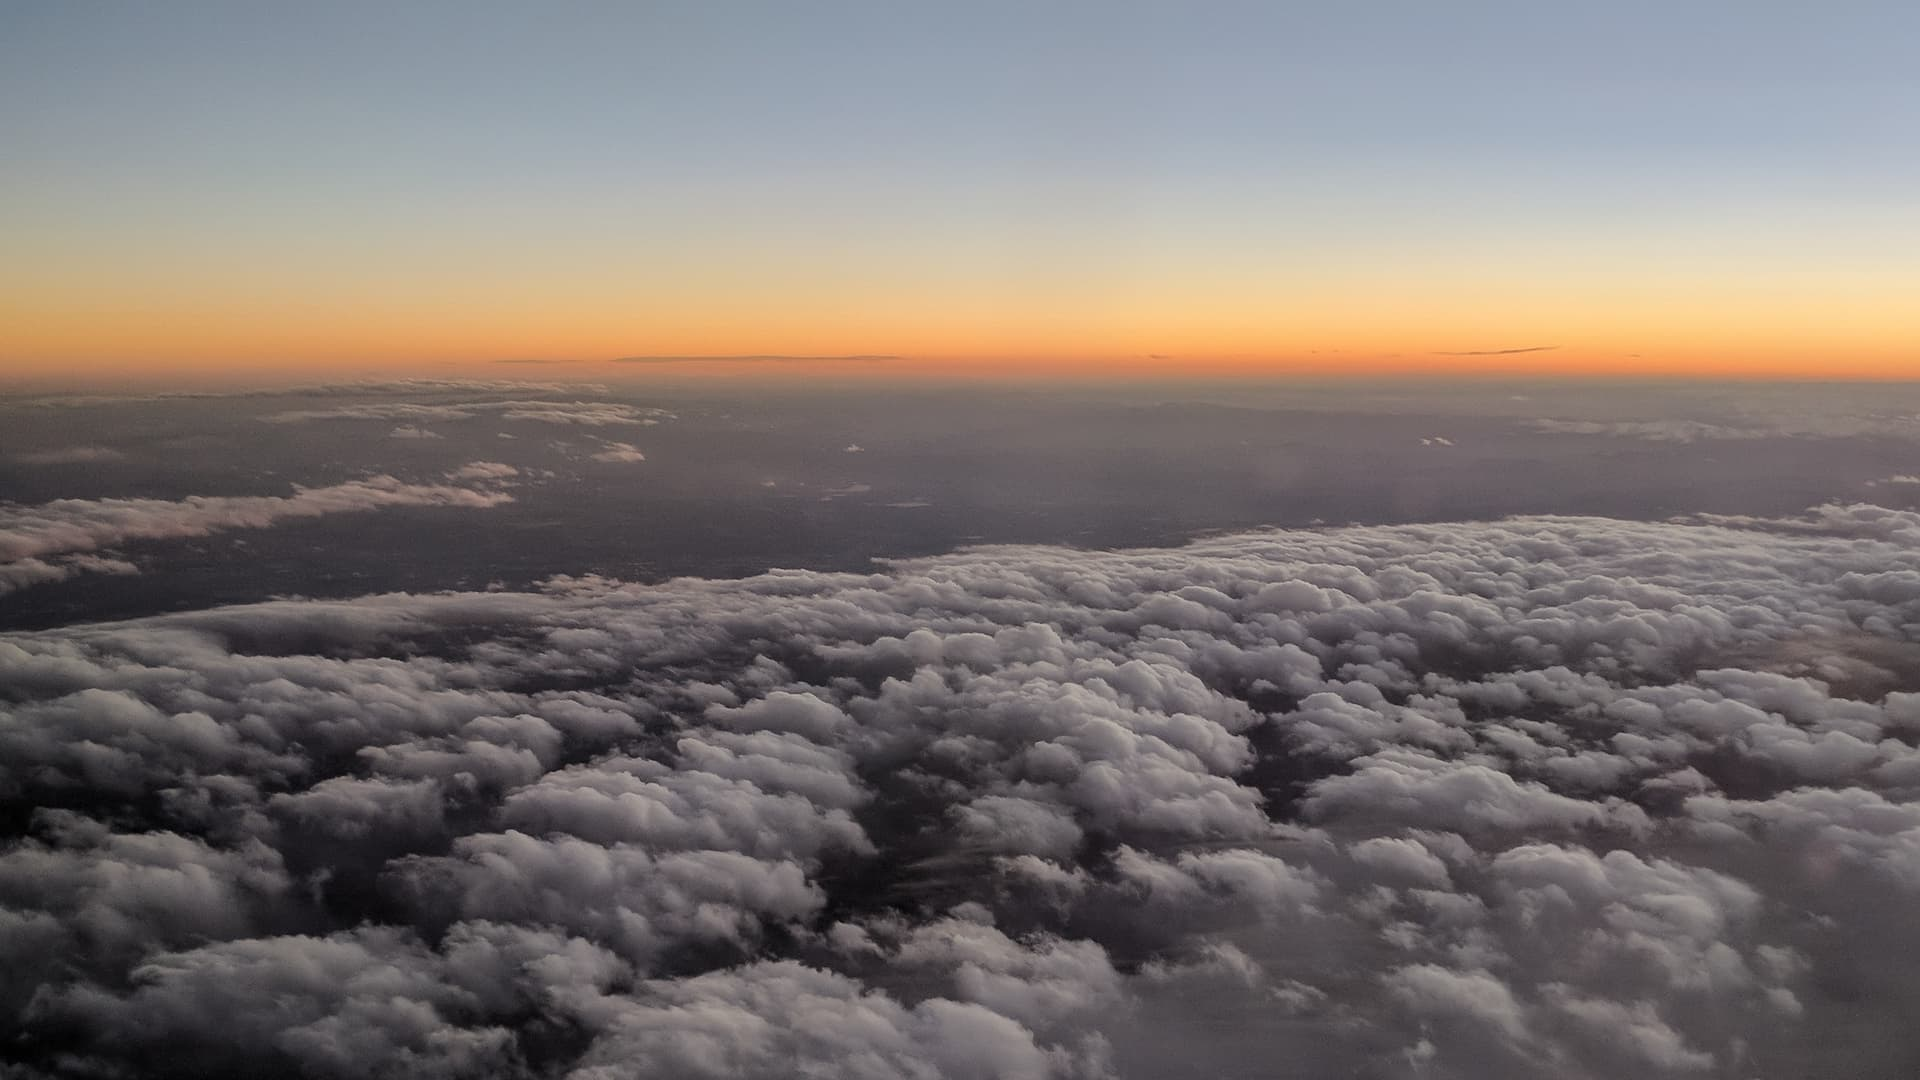 Sunset over the American Midwest as seen from a plane.